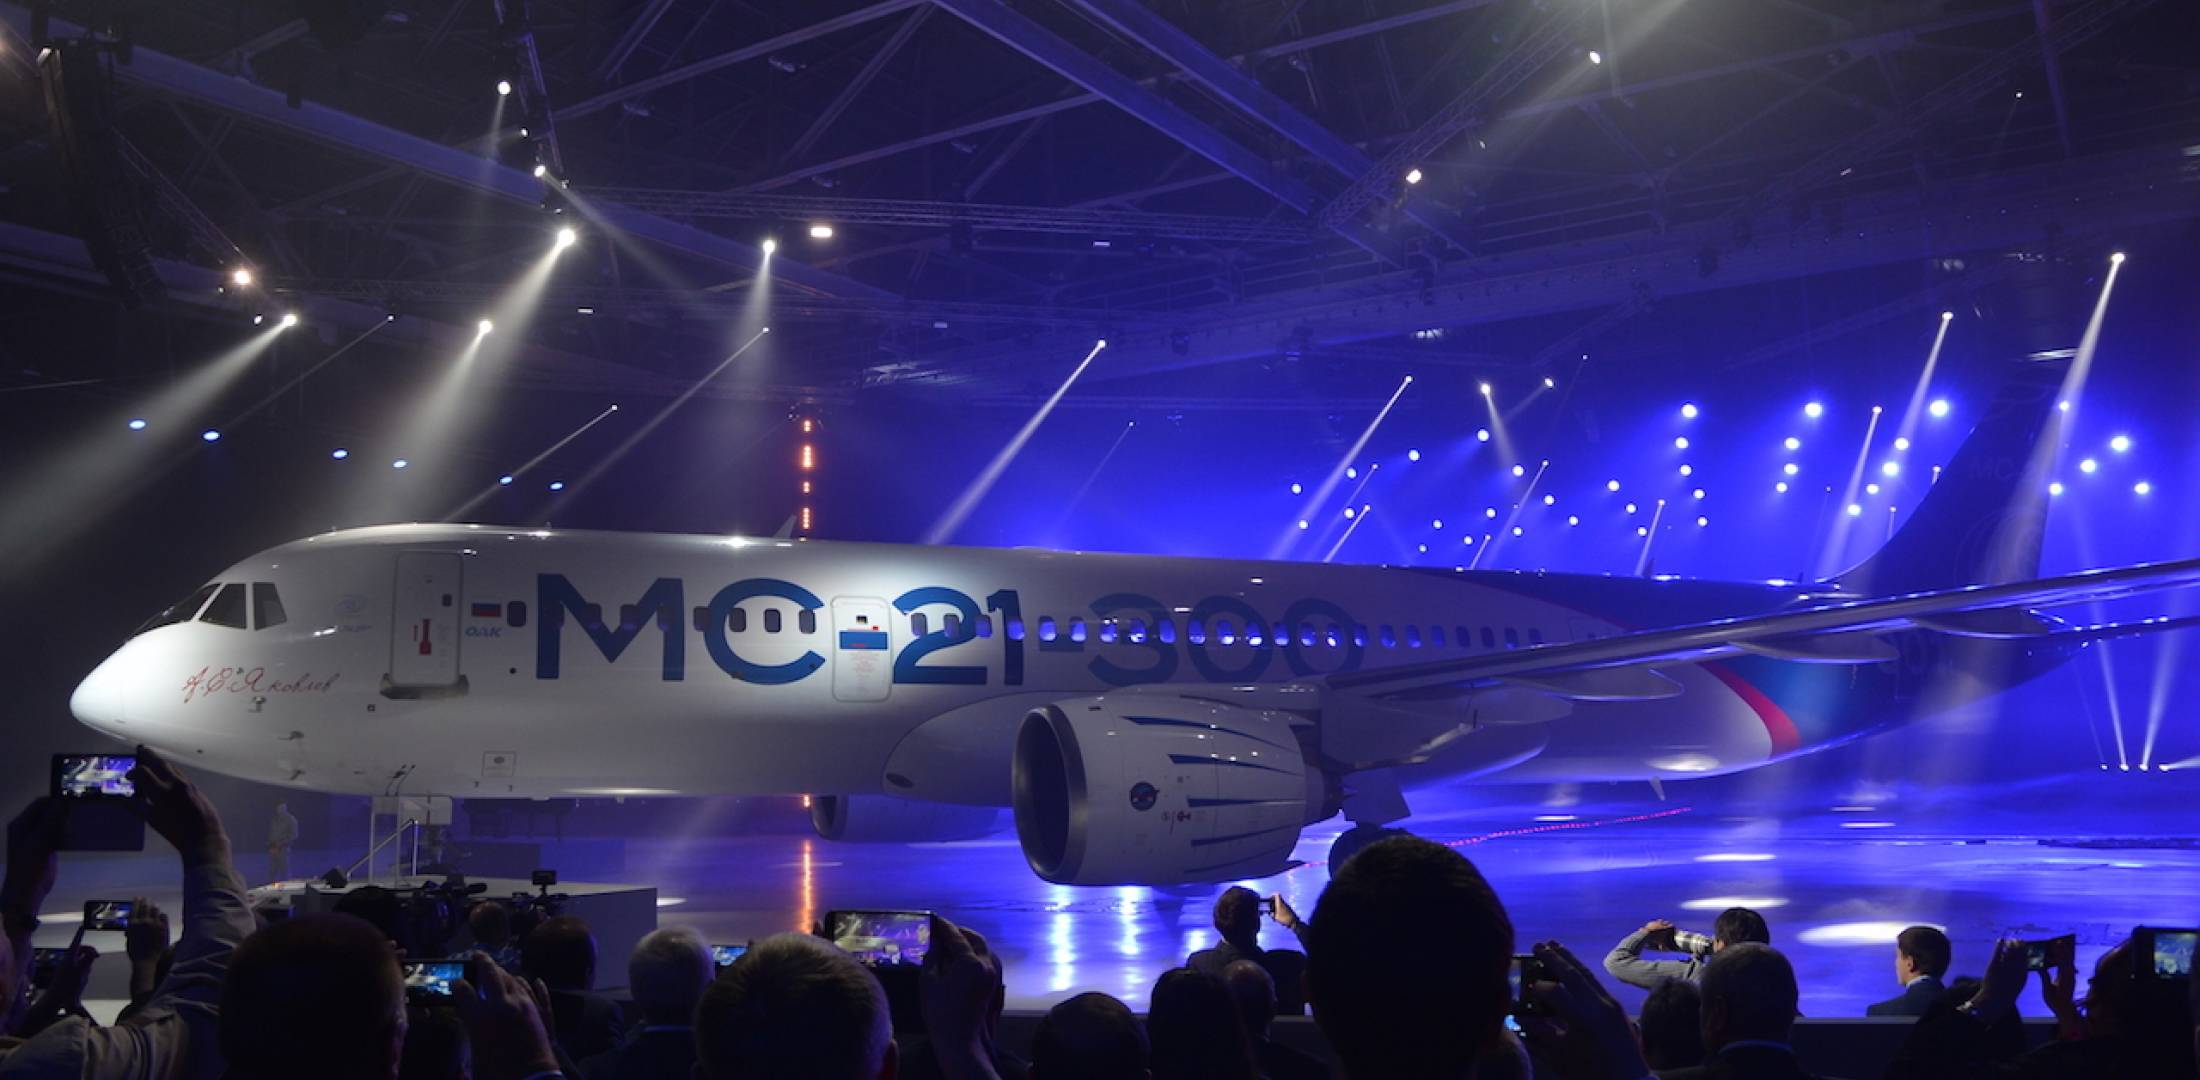 Airplane MC-21-300 appeared to be cheaper than competitors from Airbus and Boeing